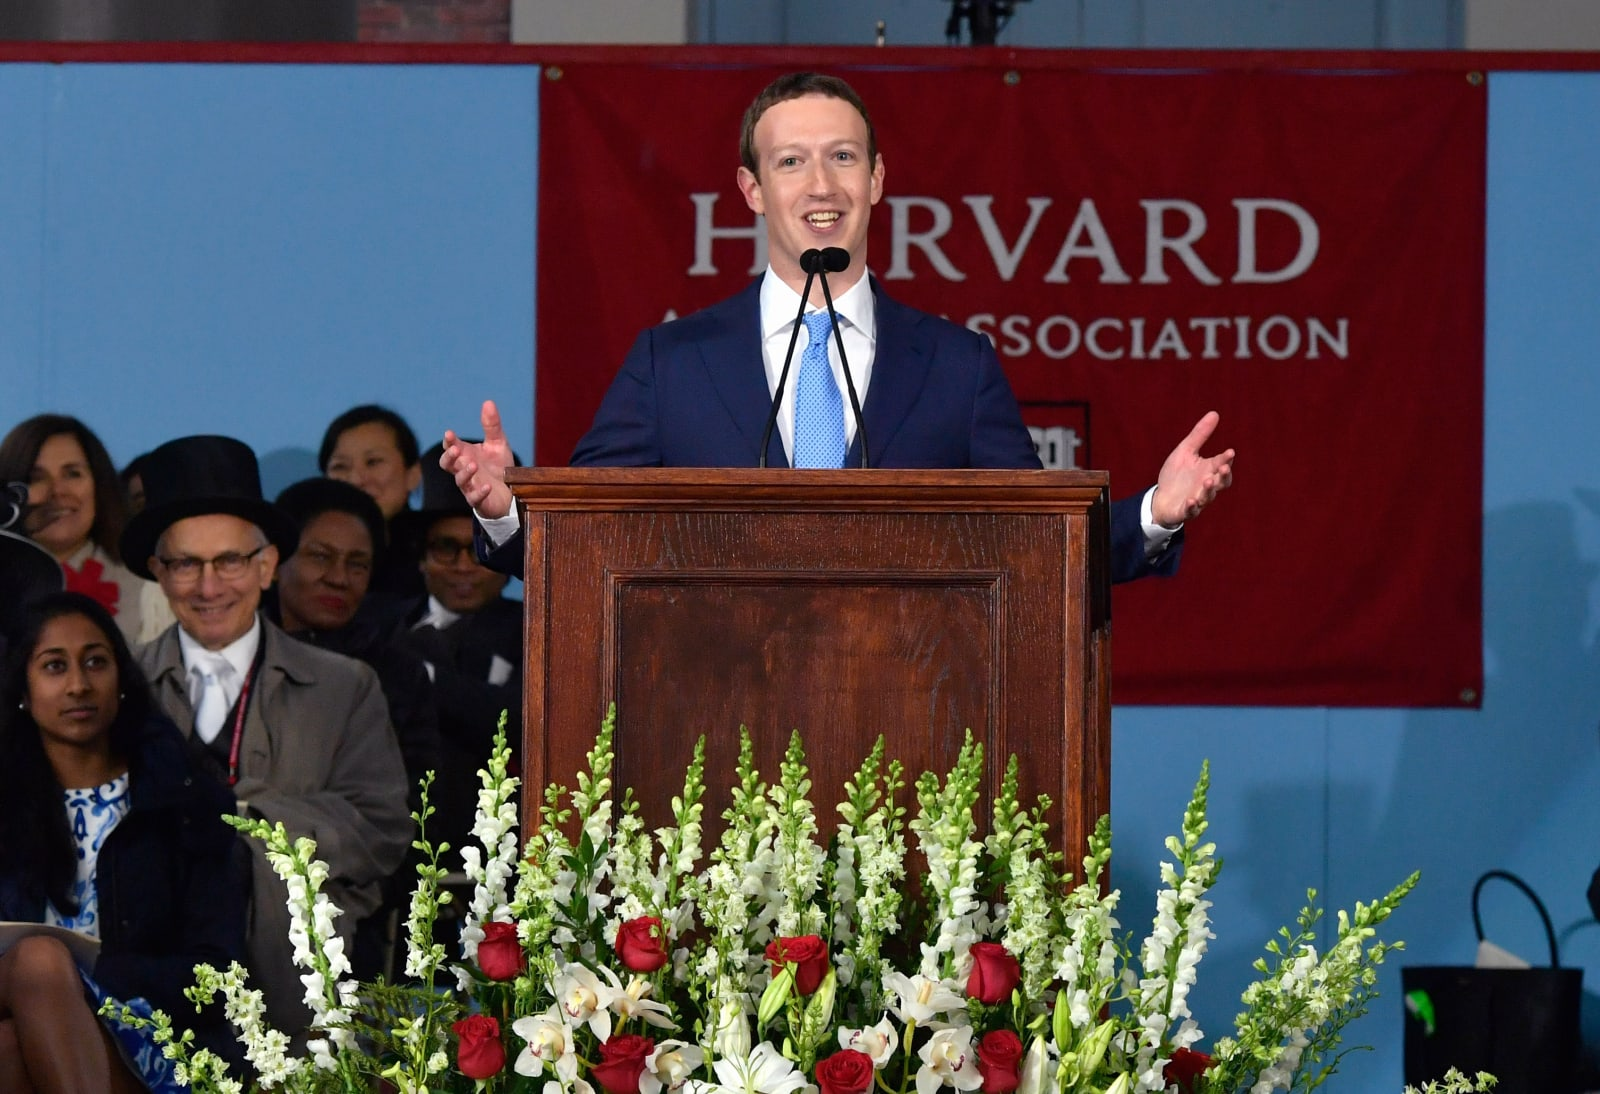 Facebook Founder Mark Zuckerberg Delivers Commencement Address At Harvard